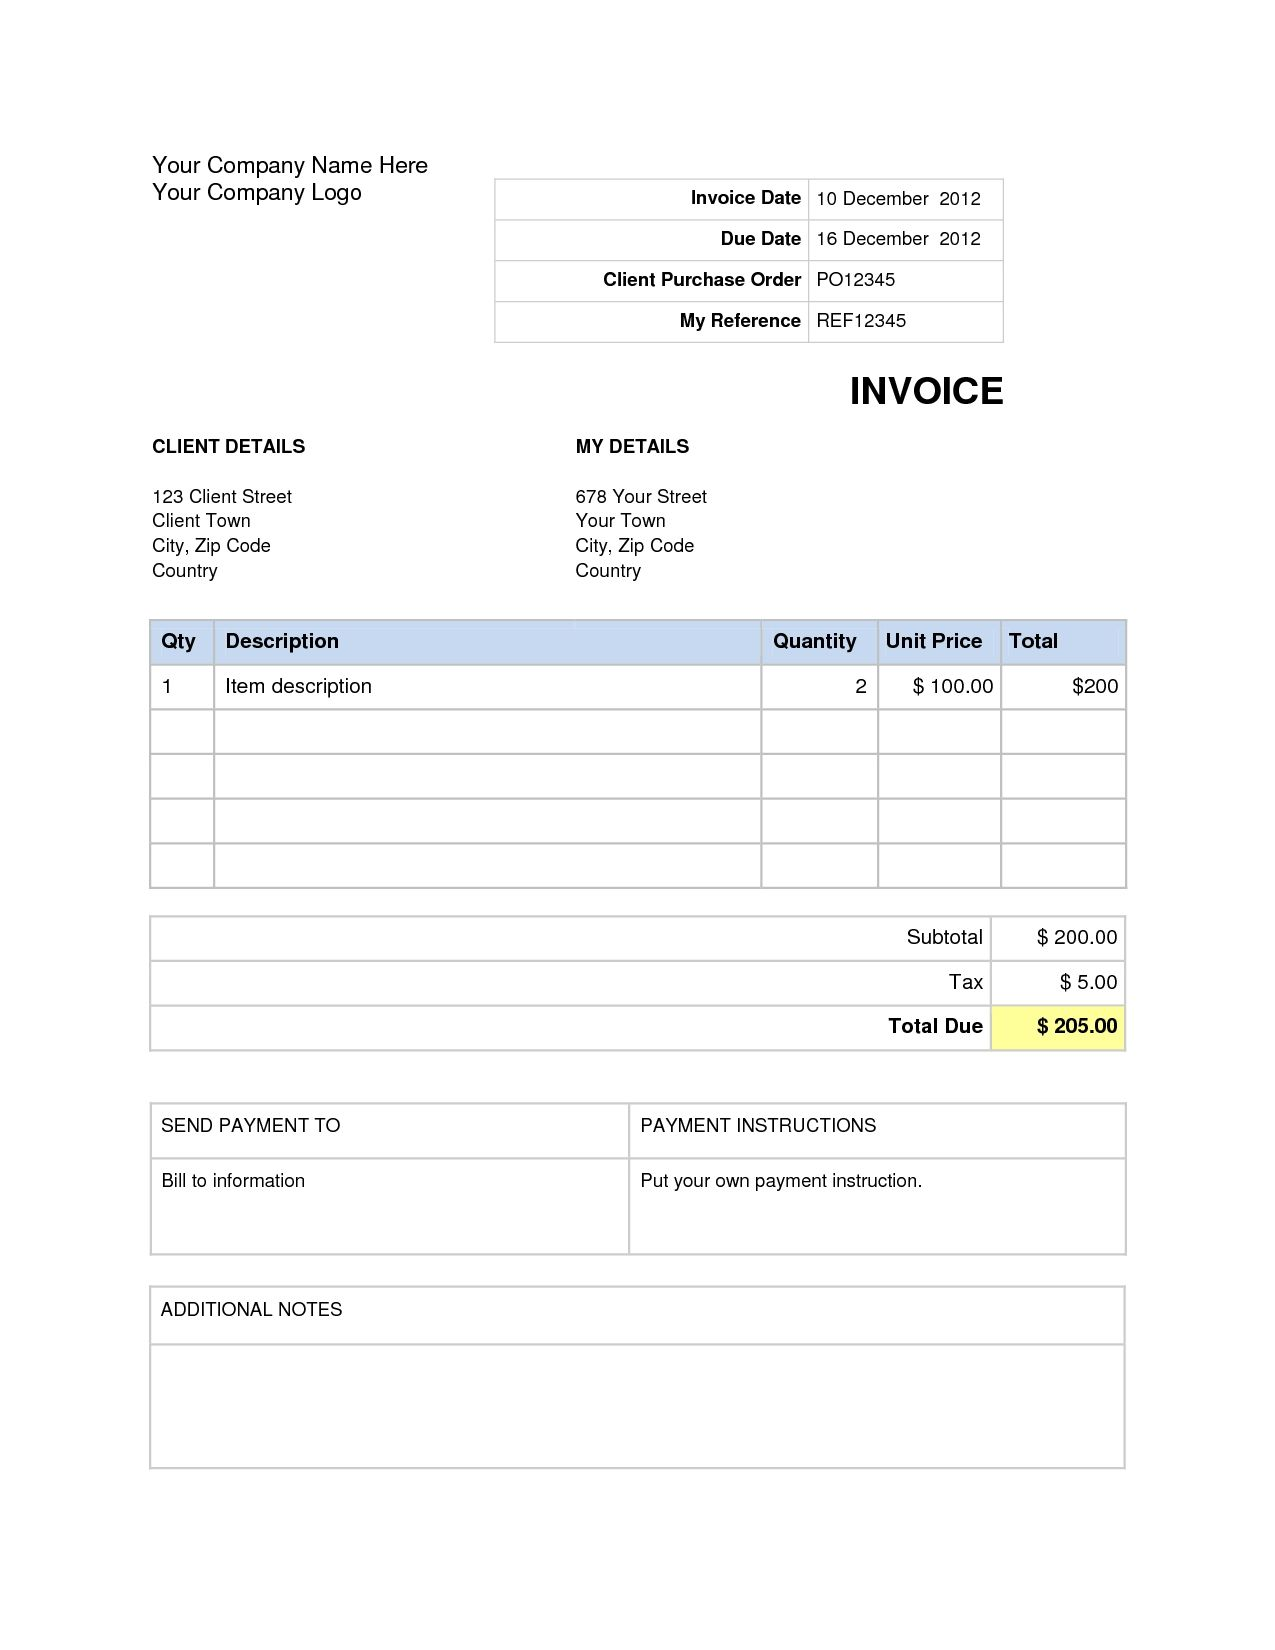 Word Document Invoice Template Blank Invoice Template Word Doc - Free word document invoice template for service business